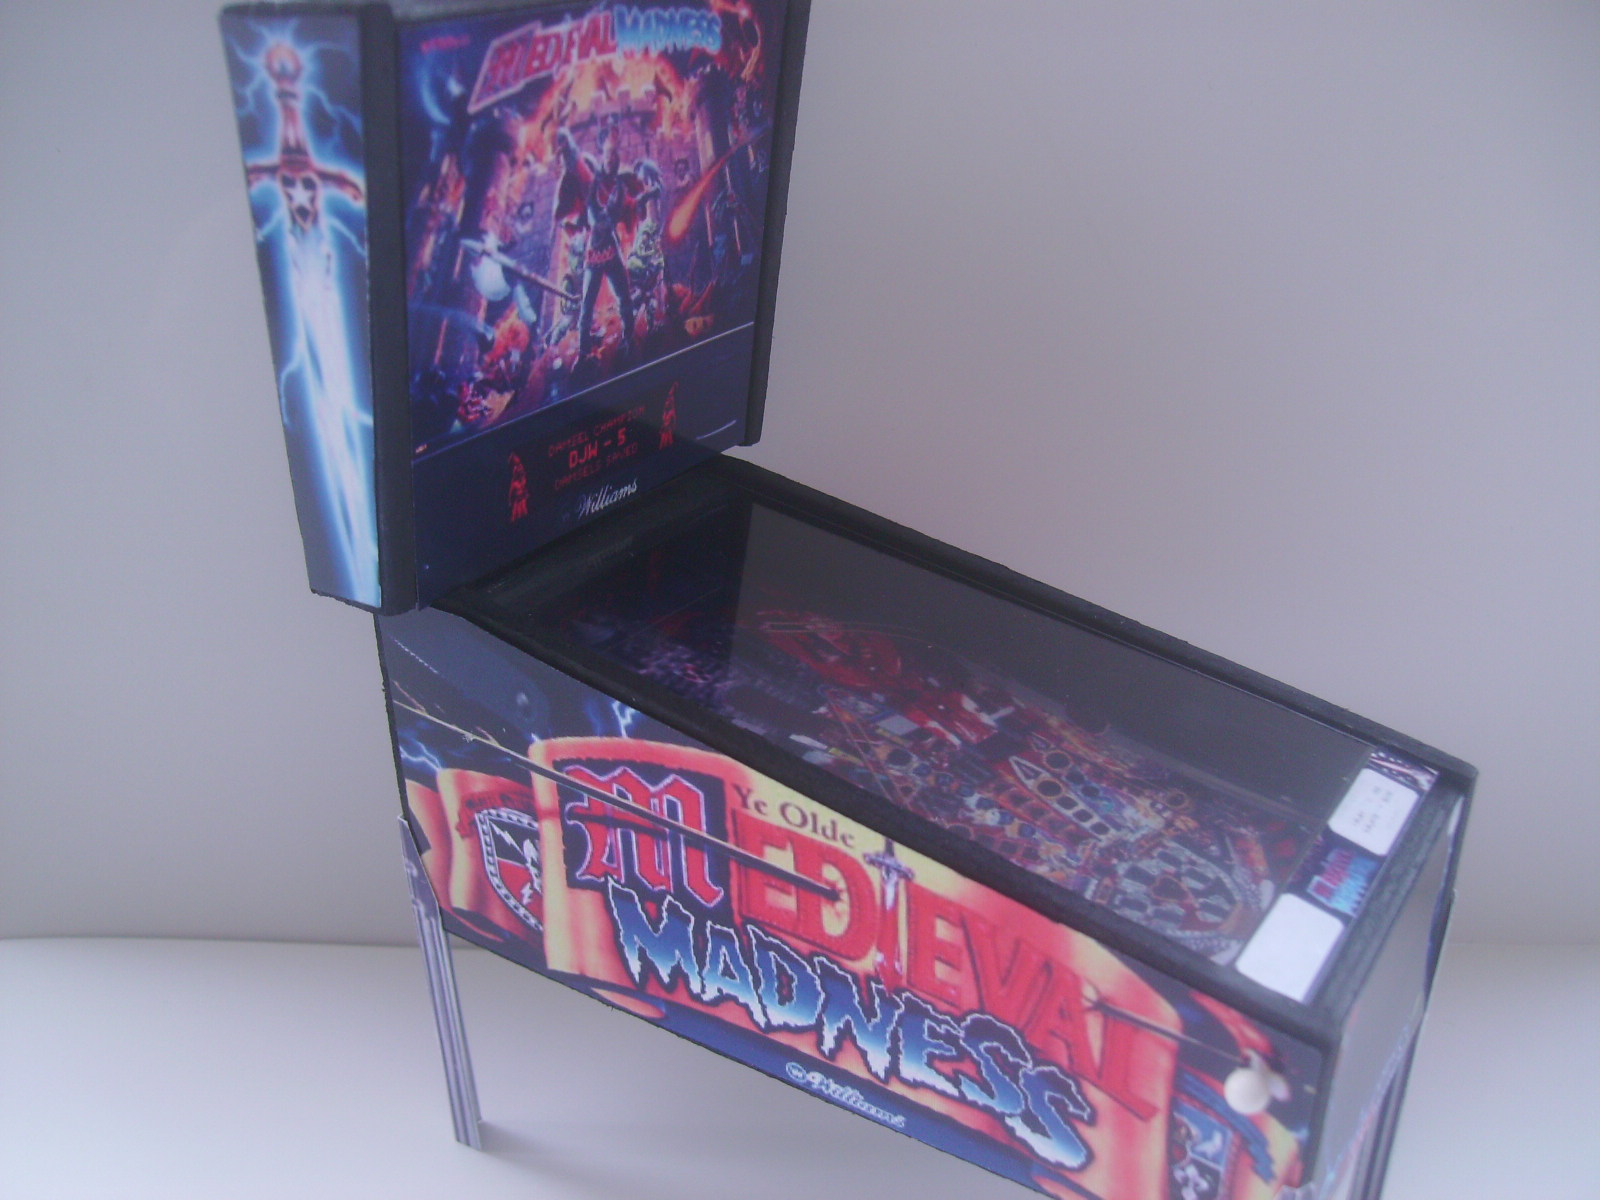 Retro Heart Medieval Madness Pinball Table Model